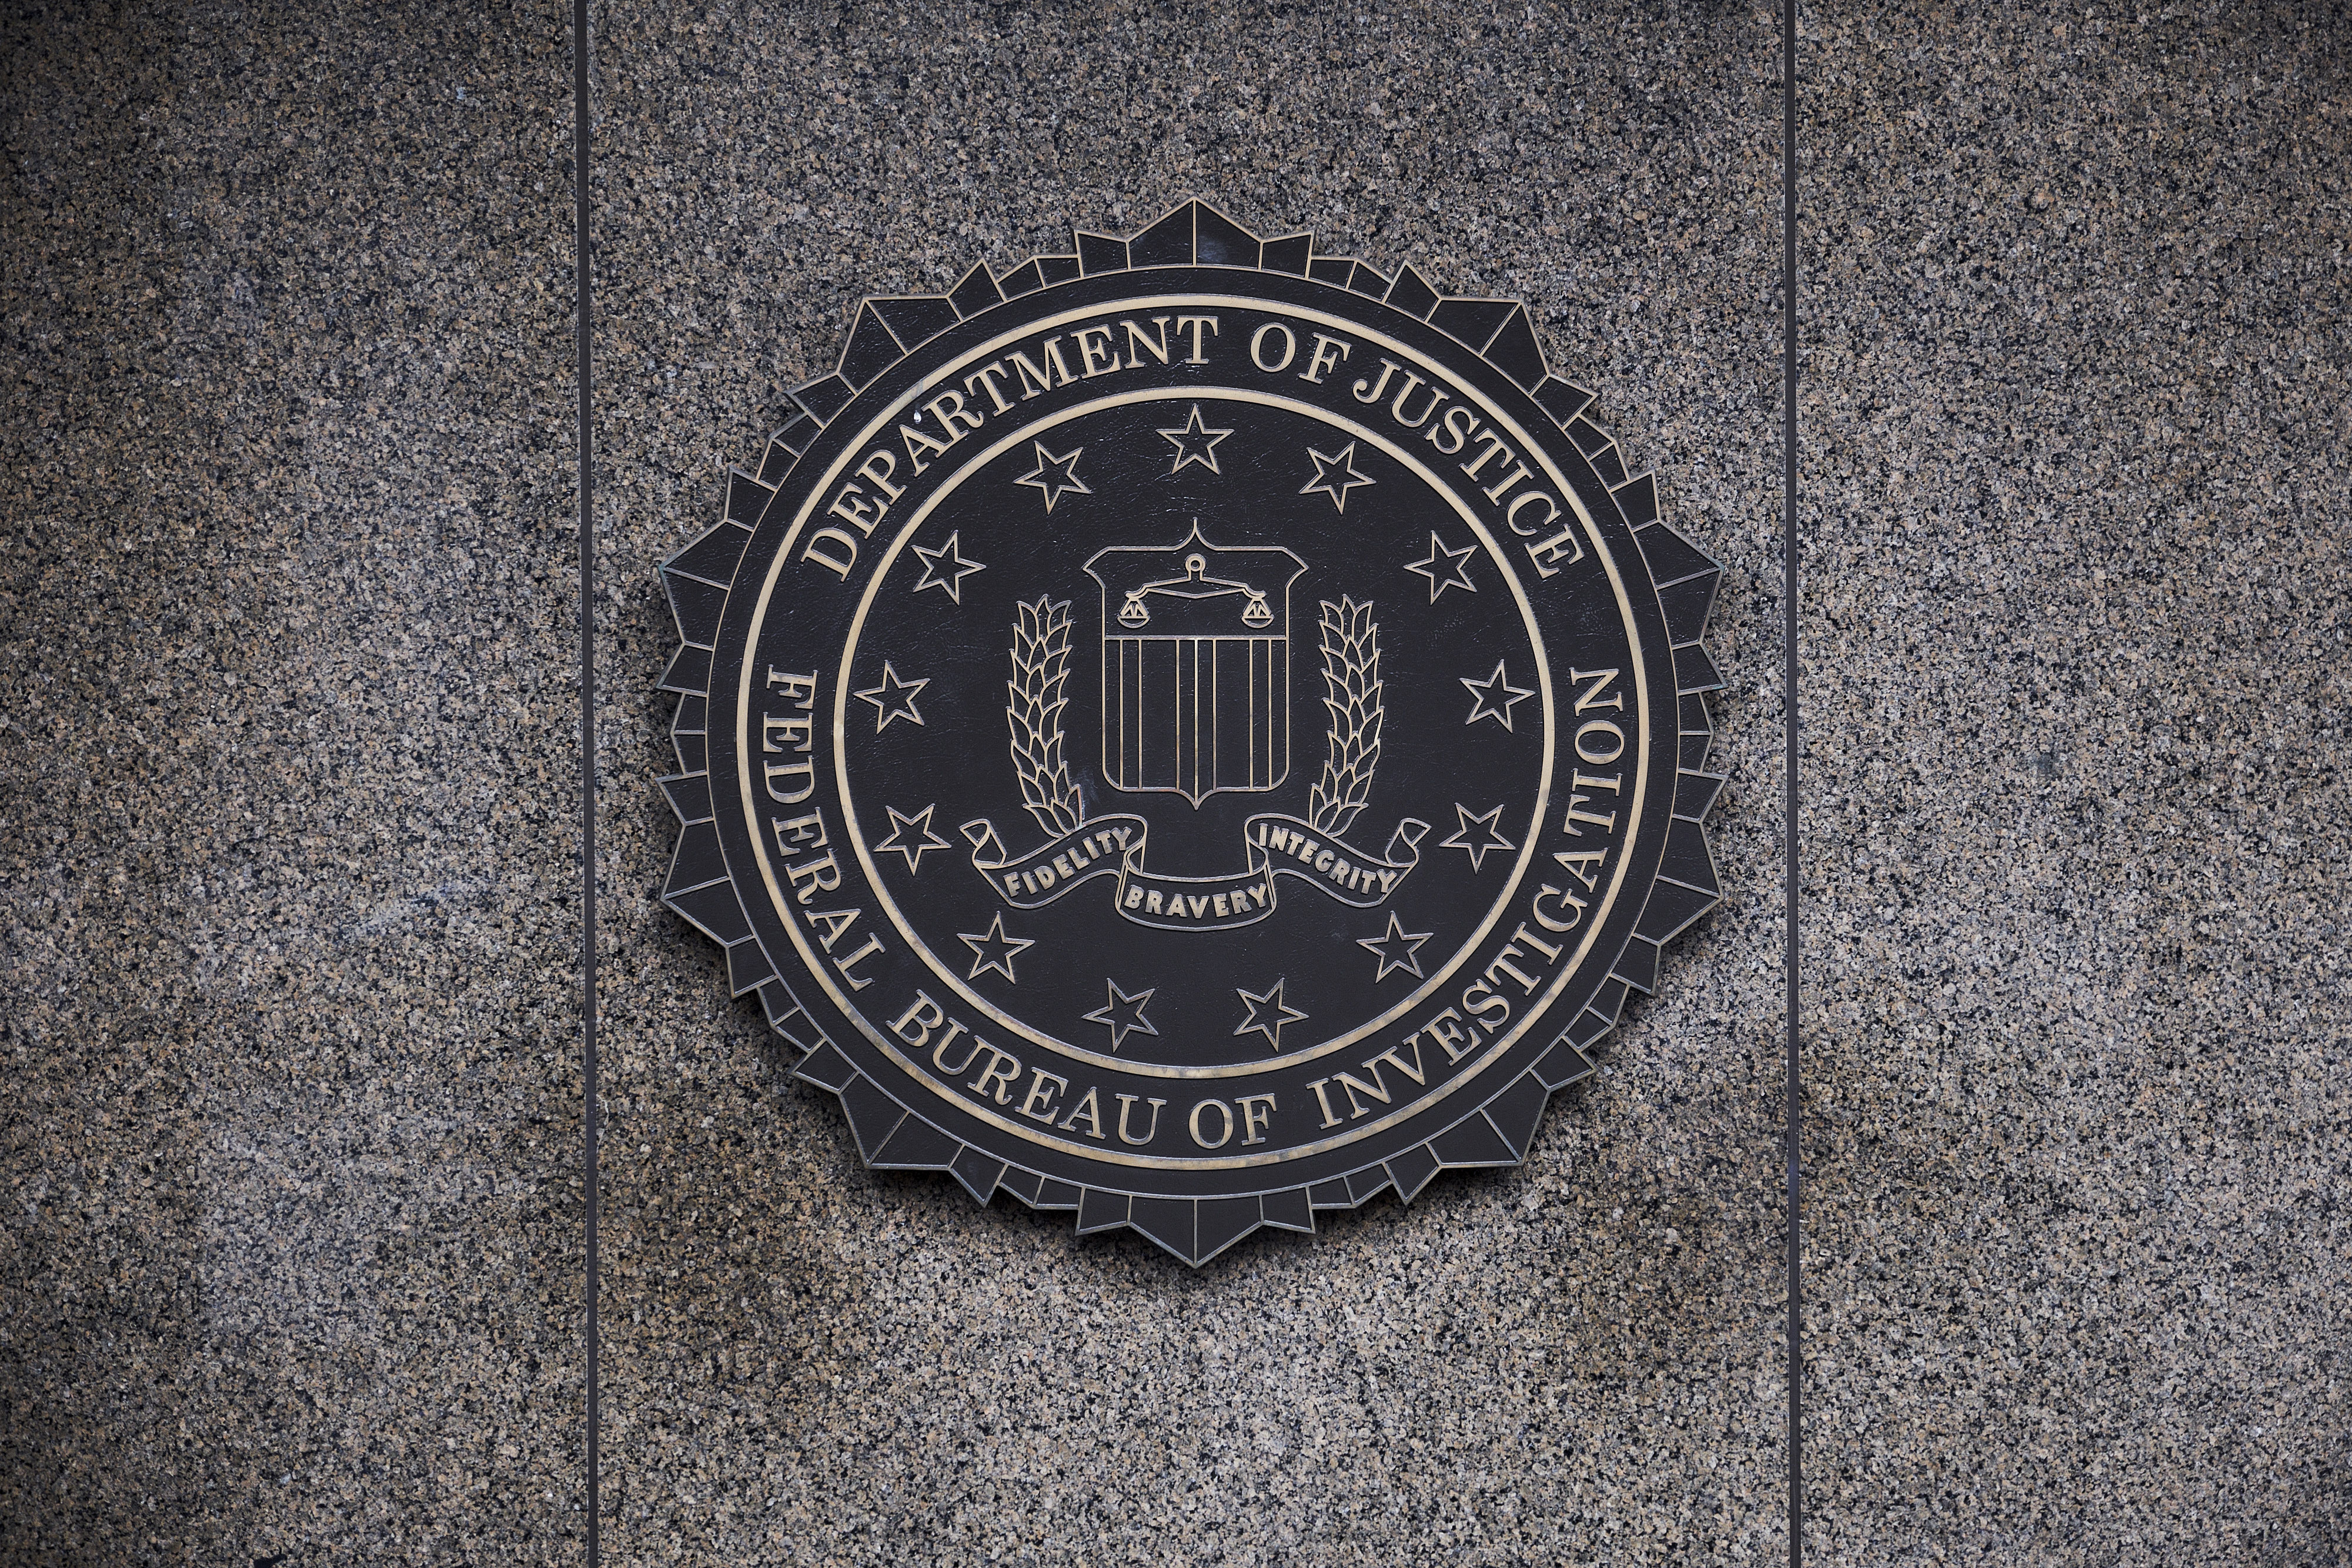 The Federal Bureau of Investigation seal is displayed outside FBI headquarters in Washington, D.C. on Feb. 2, 2018.